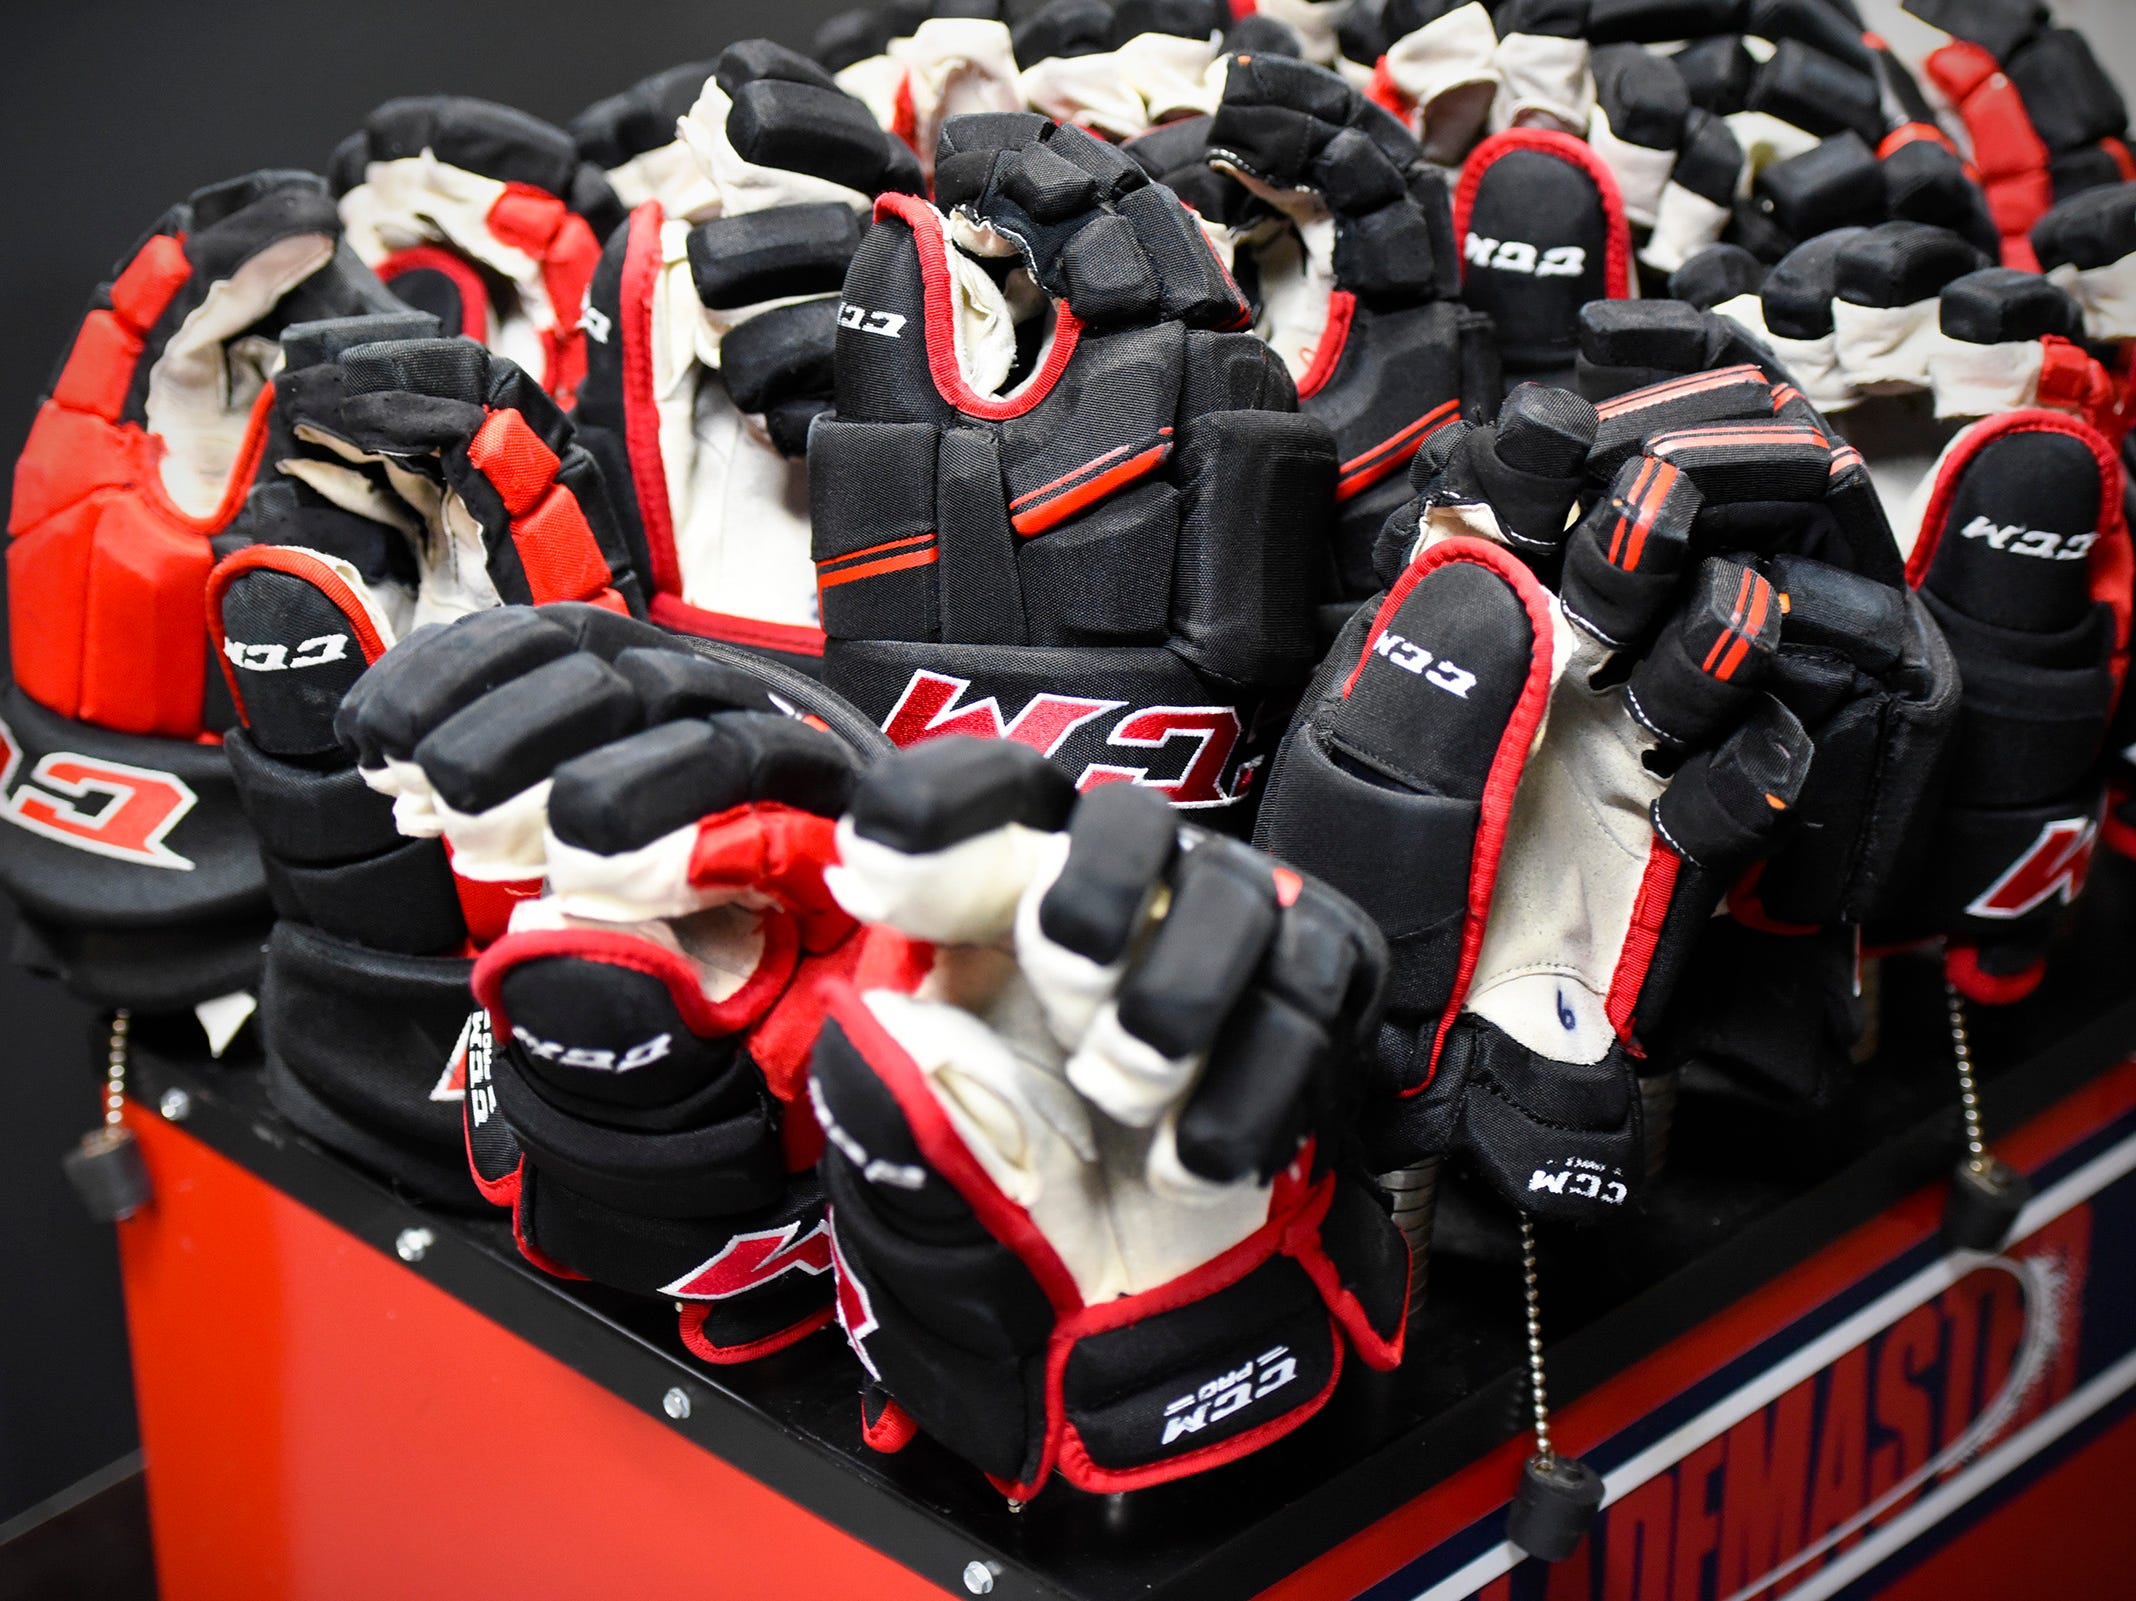 St. Cloud State University players gloves sit on a dryer while they are in the locker room between periods against the University of Nebraska-Omaha Friday, Dec. 7, at the Herb Brooks National Hockey Center.